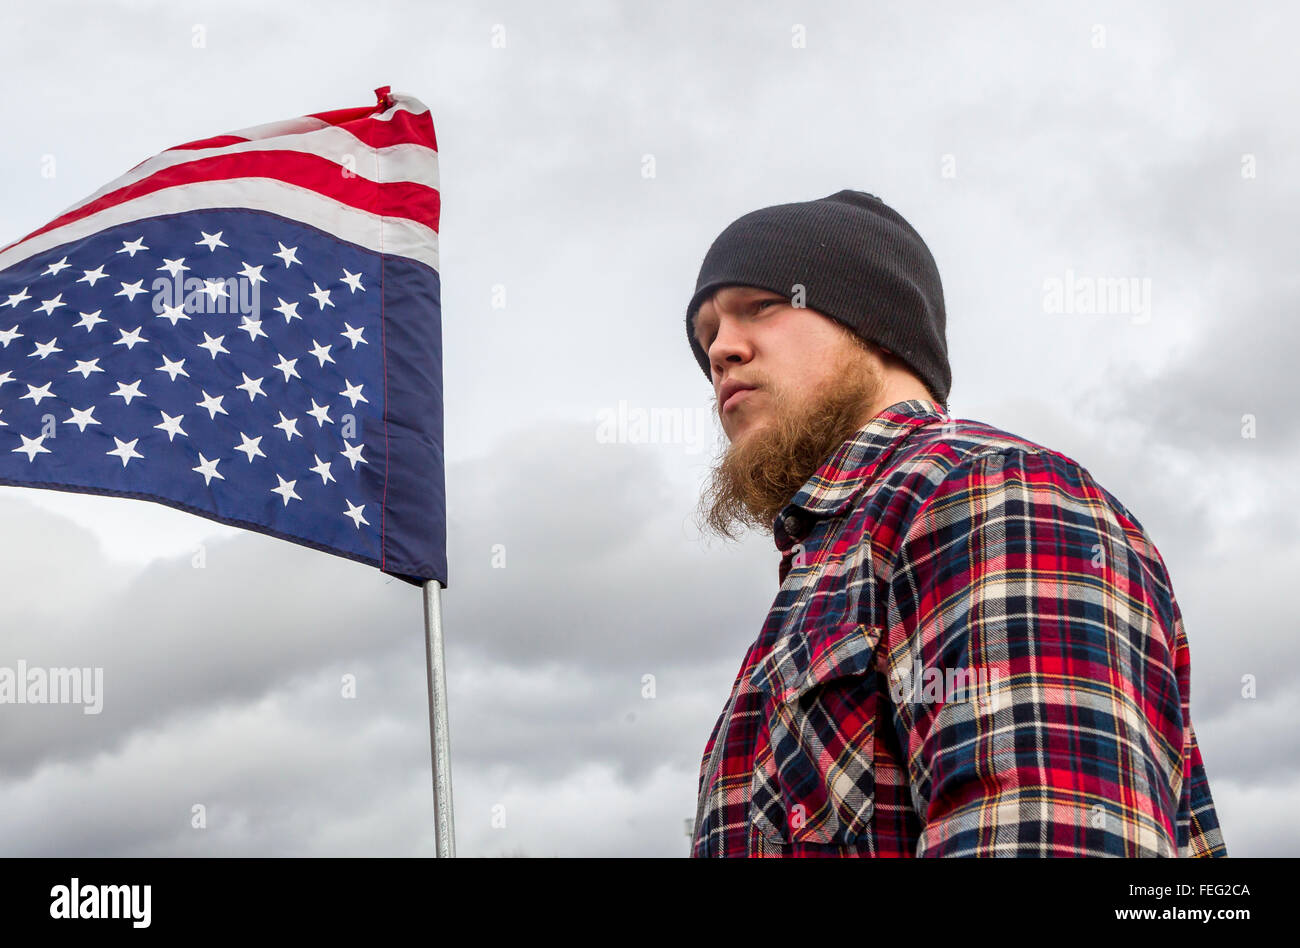 Young man holds upside down flag. - Stock Image